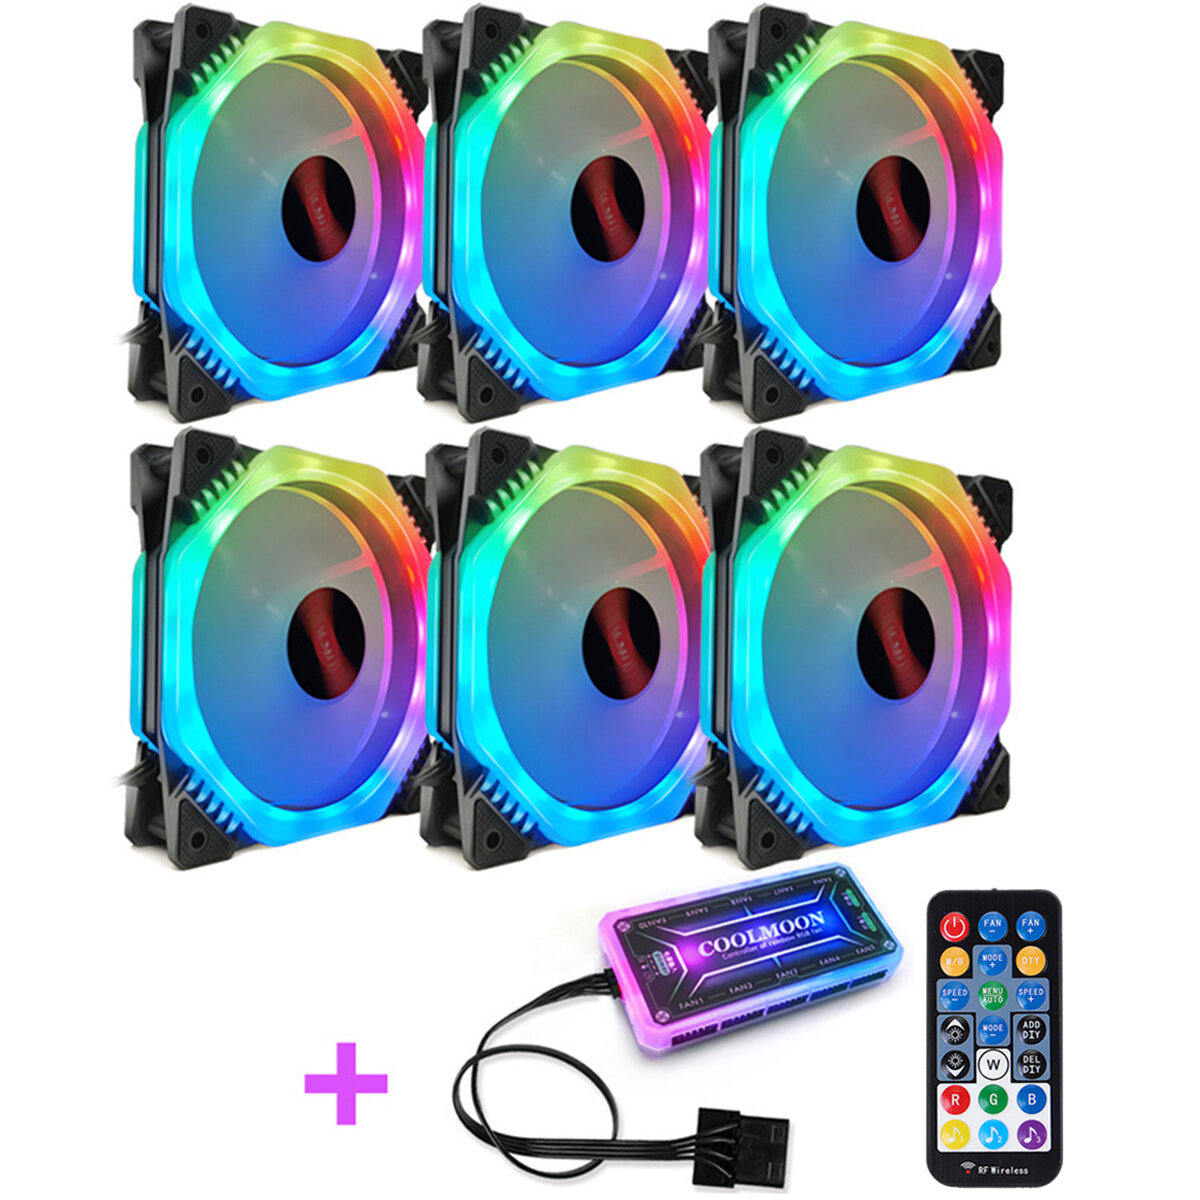 Coolmoon 6PCS 5V 3Pin Adjustable RGB LED Light Computer Case PC Cooling Fan with Remote